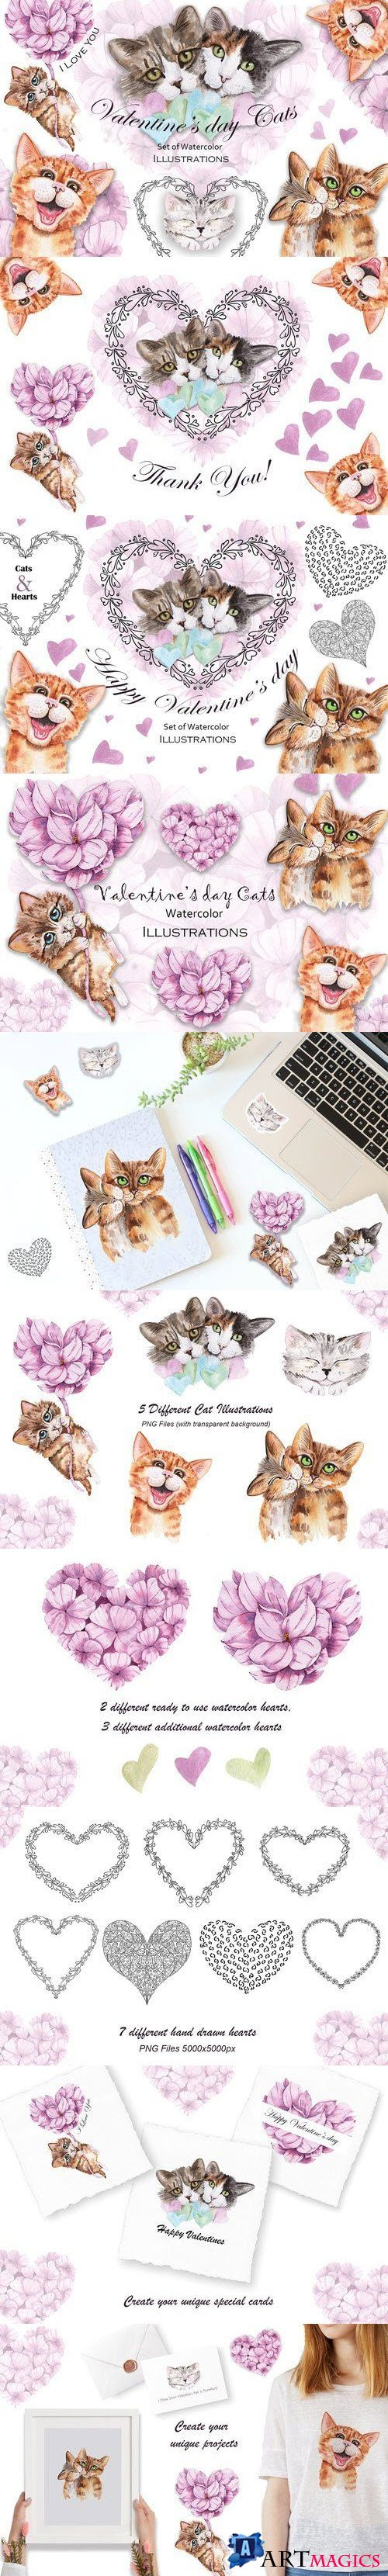 Valentine's Day Watercolor Cats - 4441445